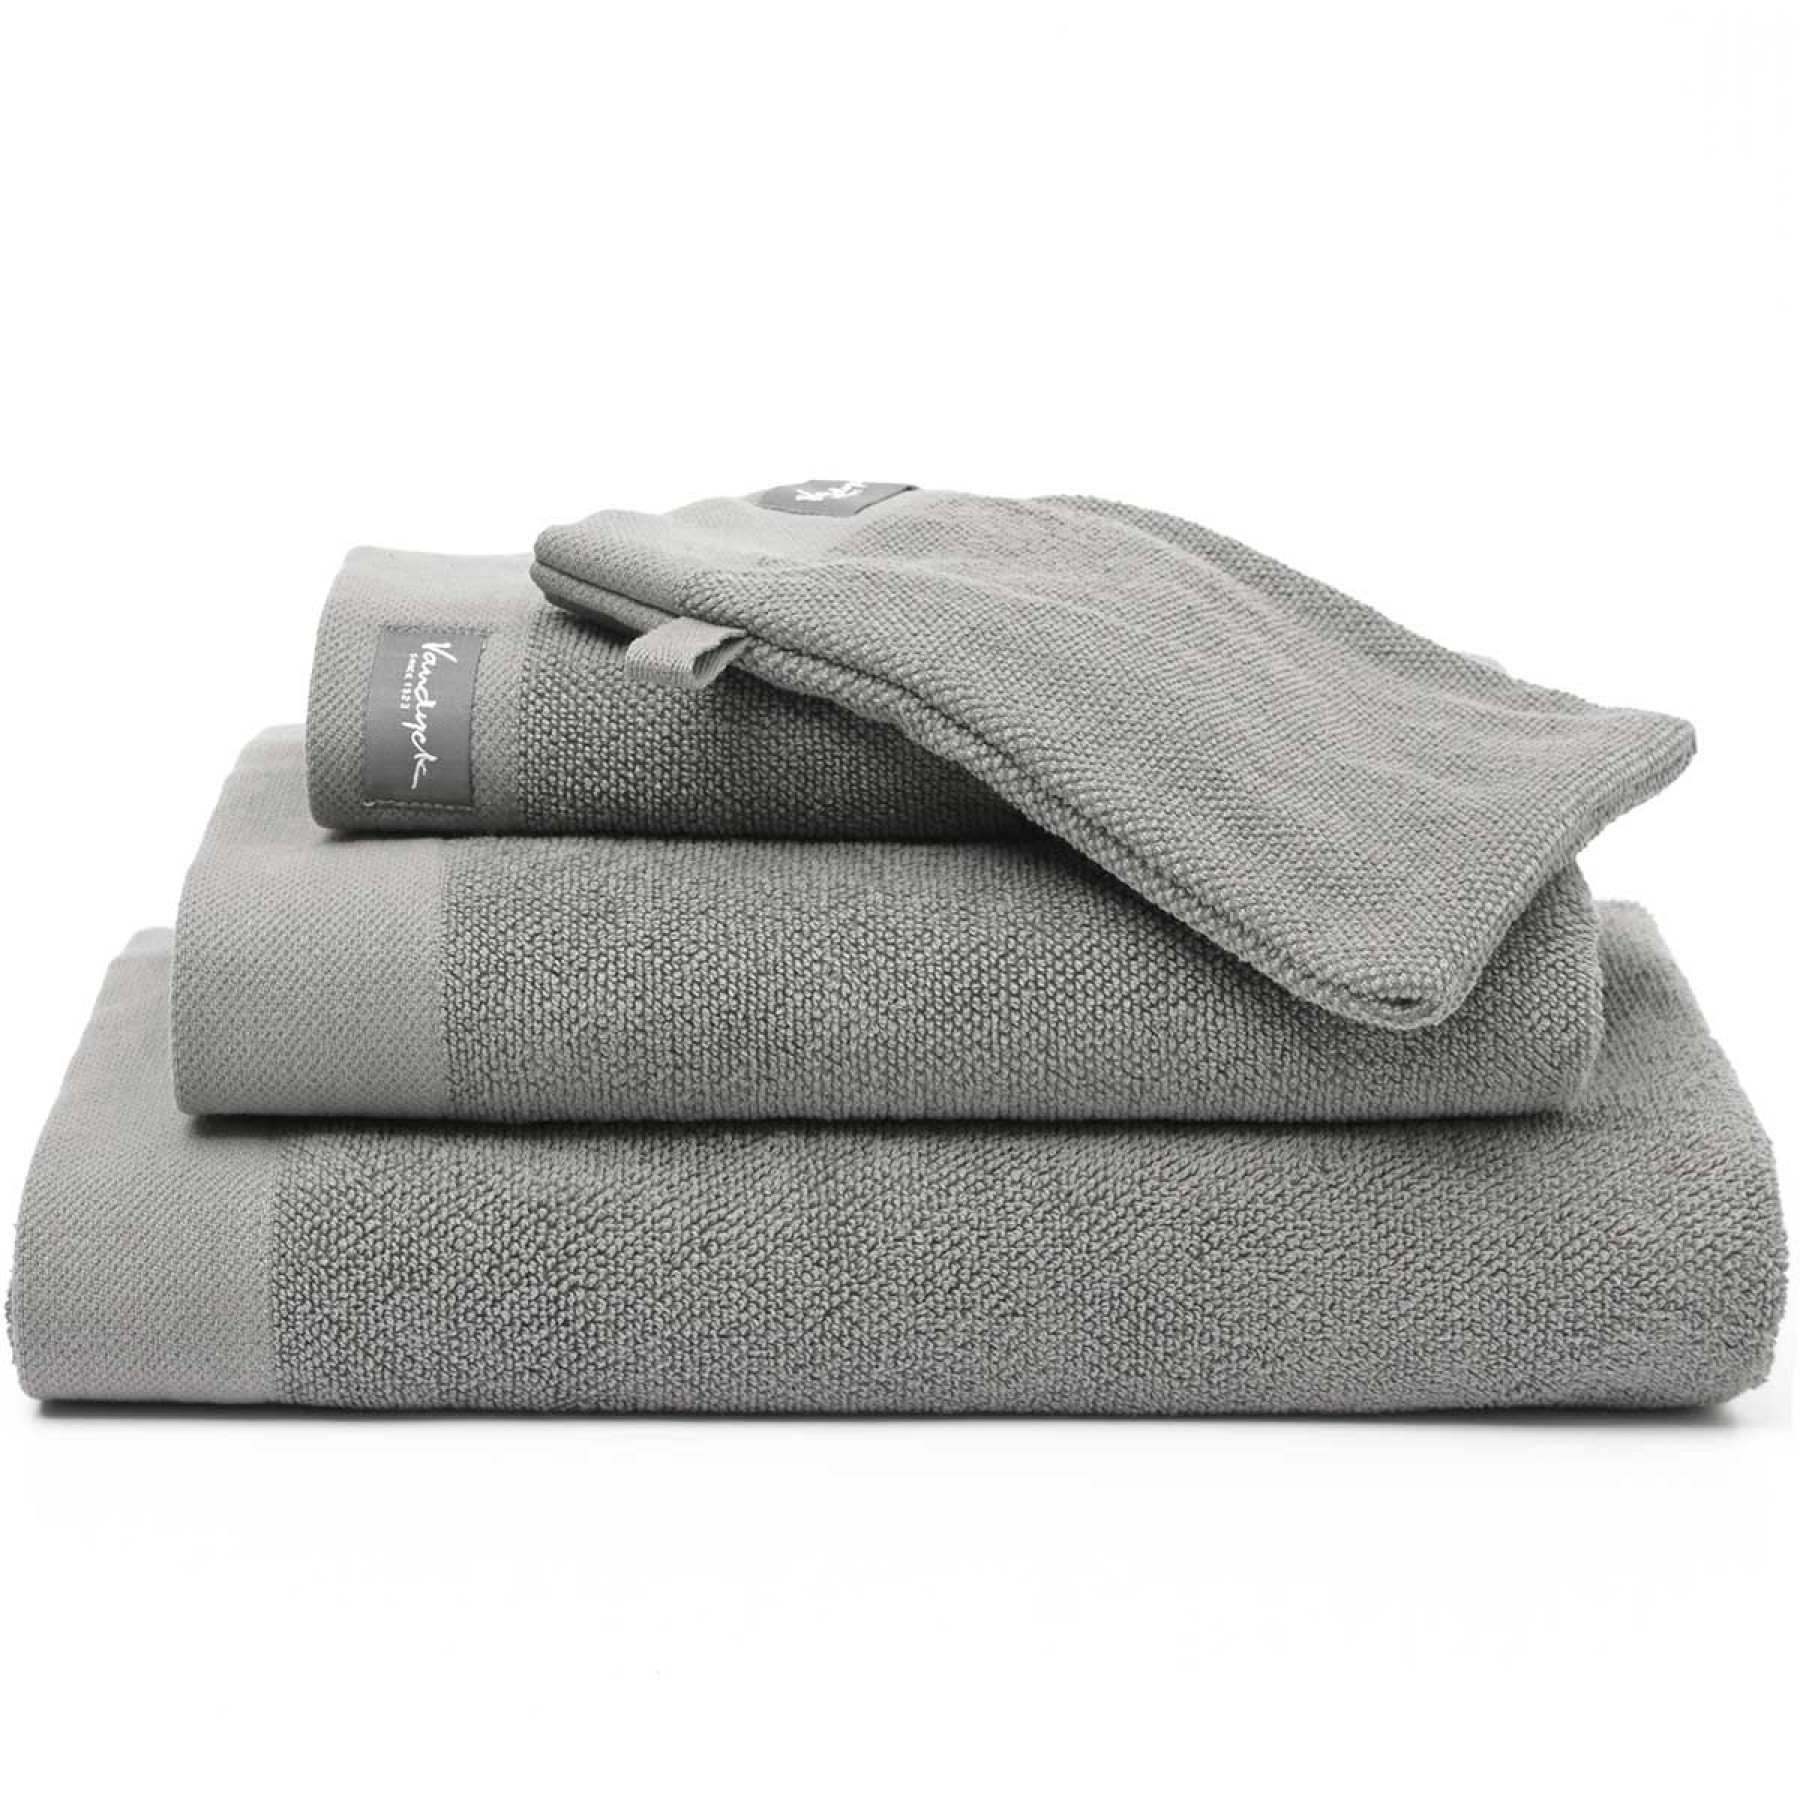 Vandyck Handdoek Uni Home Collection Mole Grey